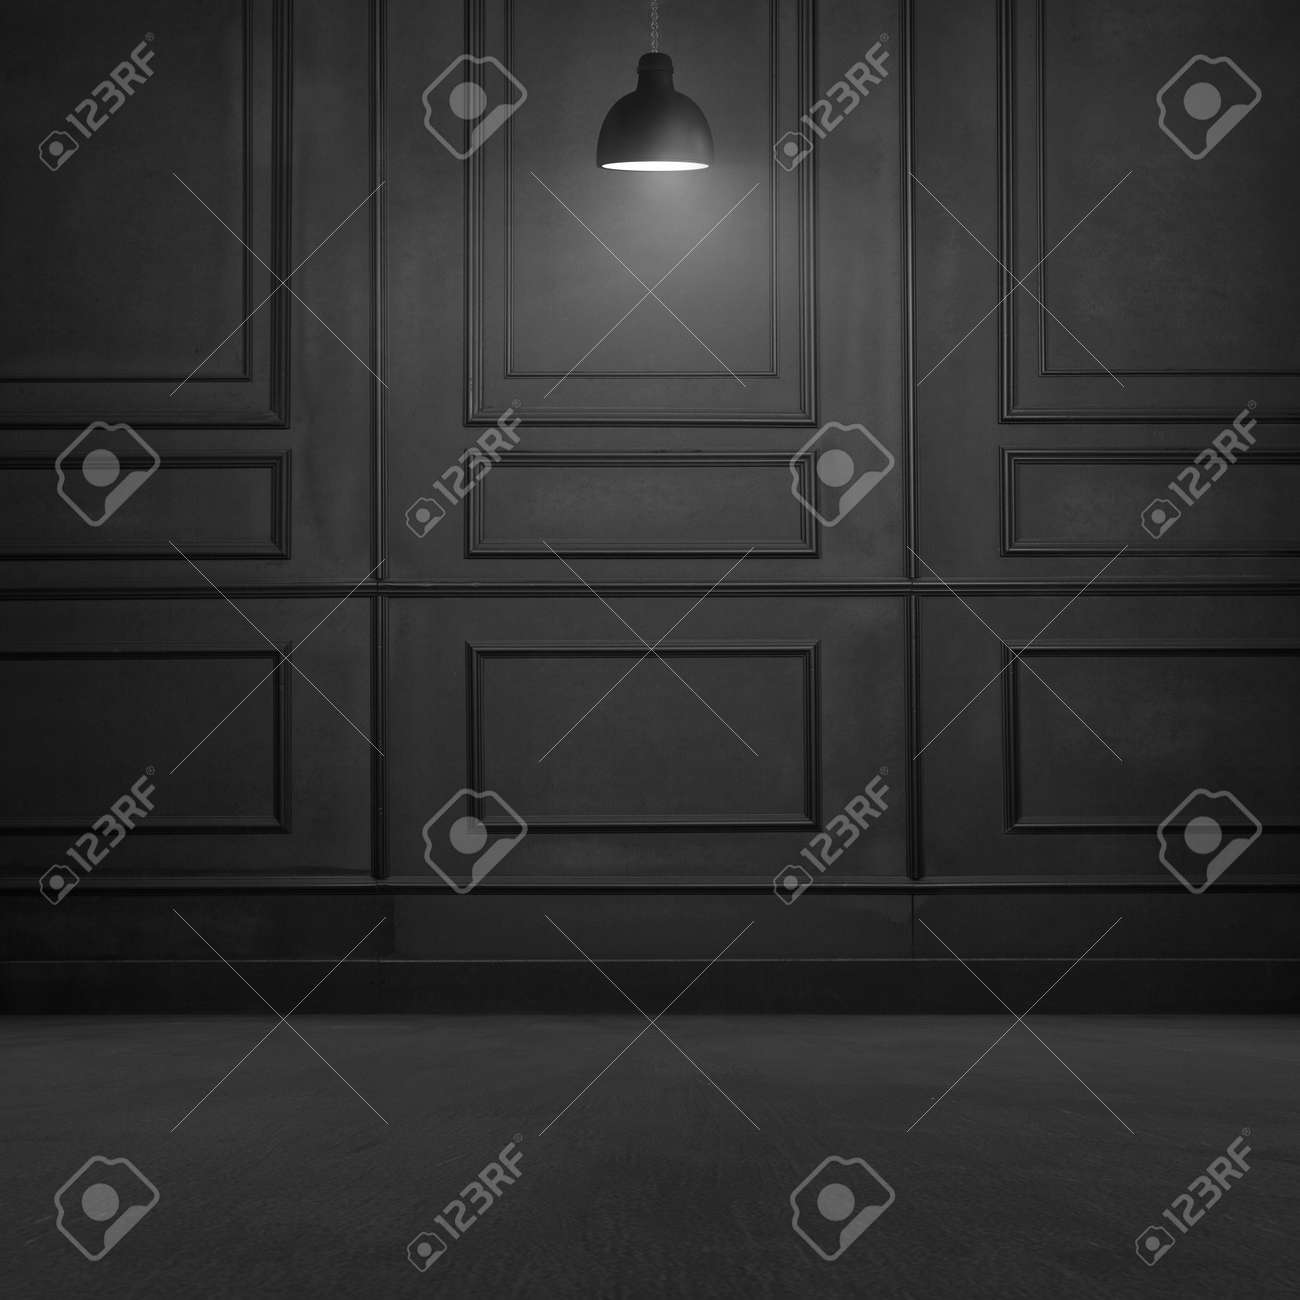 Black Room Interior Design Stock Photo  Picture And Royalty Free     Black room interior design Stock Photo   58146840